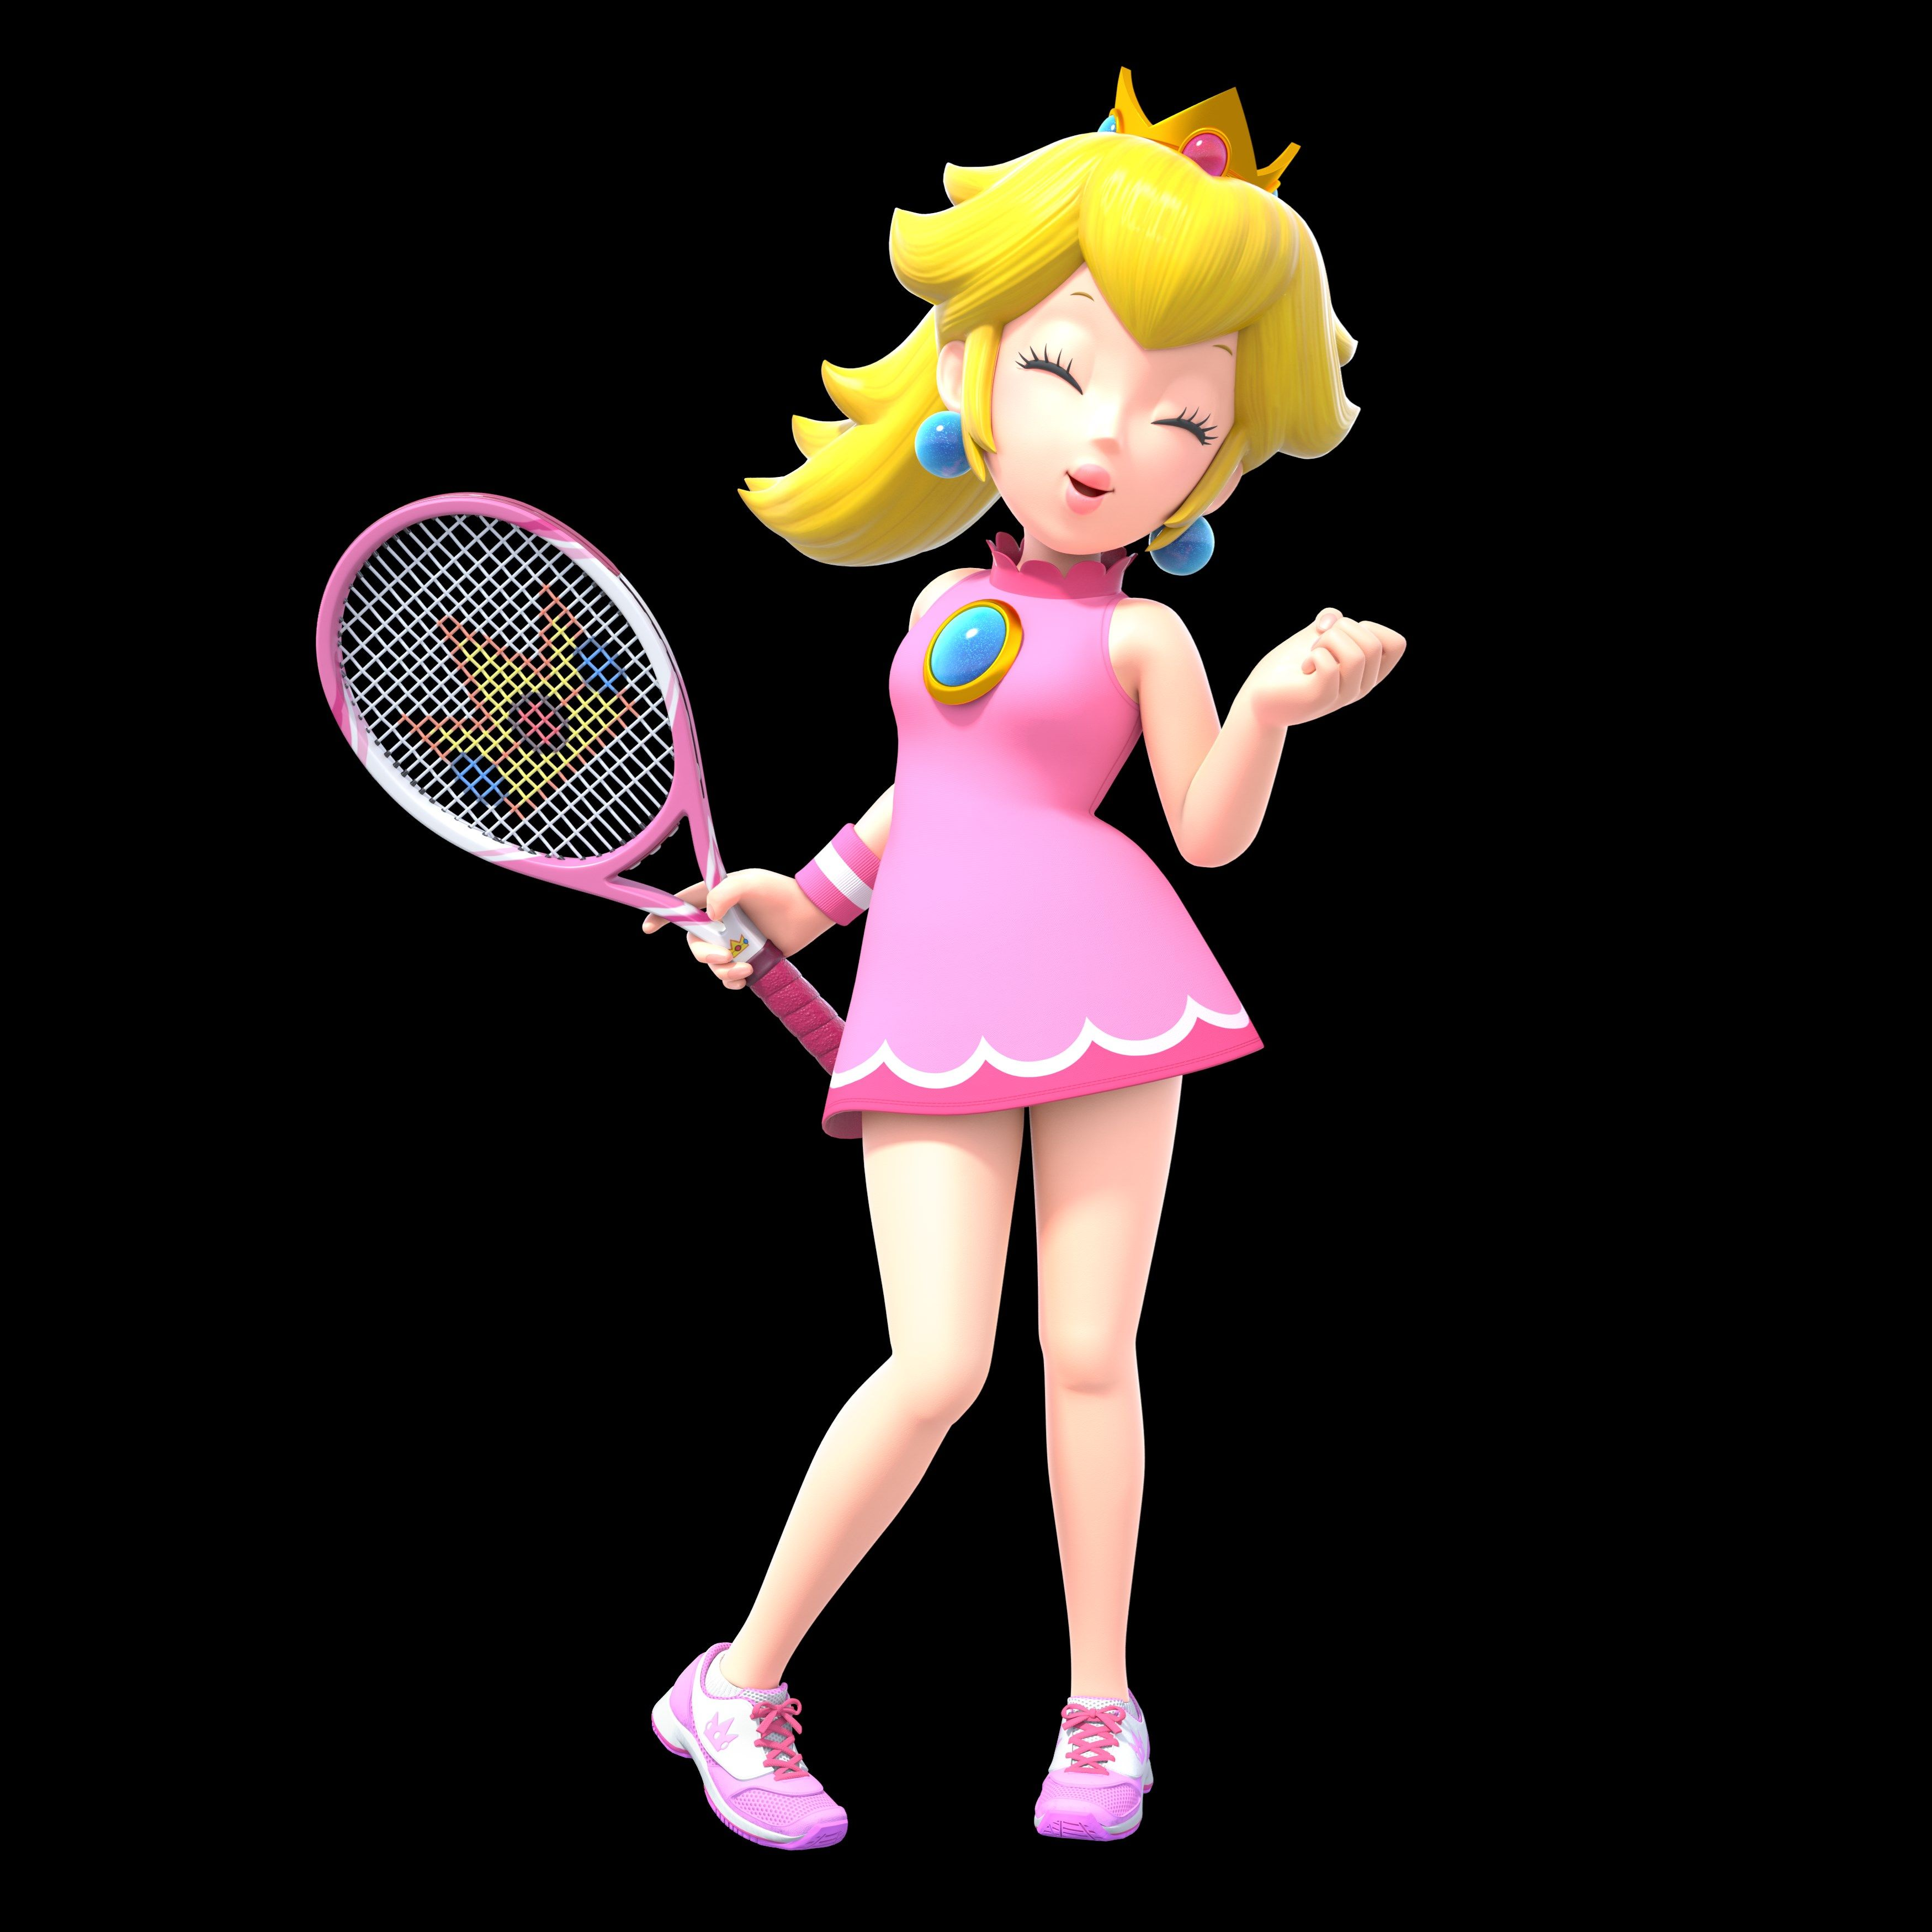 First and foremost, Mario Tennis Aces has up to 4-player online multiplayer, events based online tournaments.